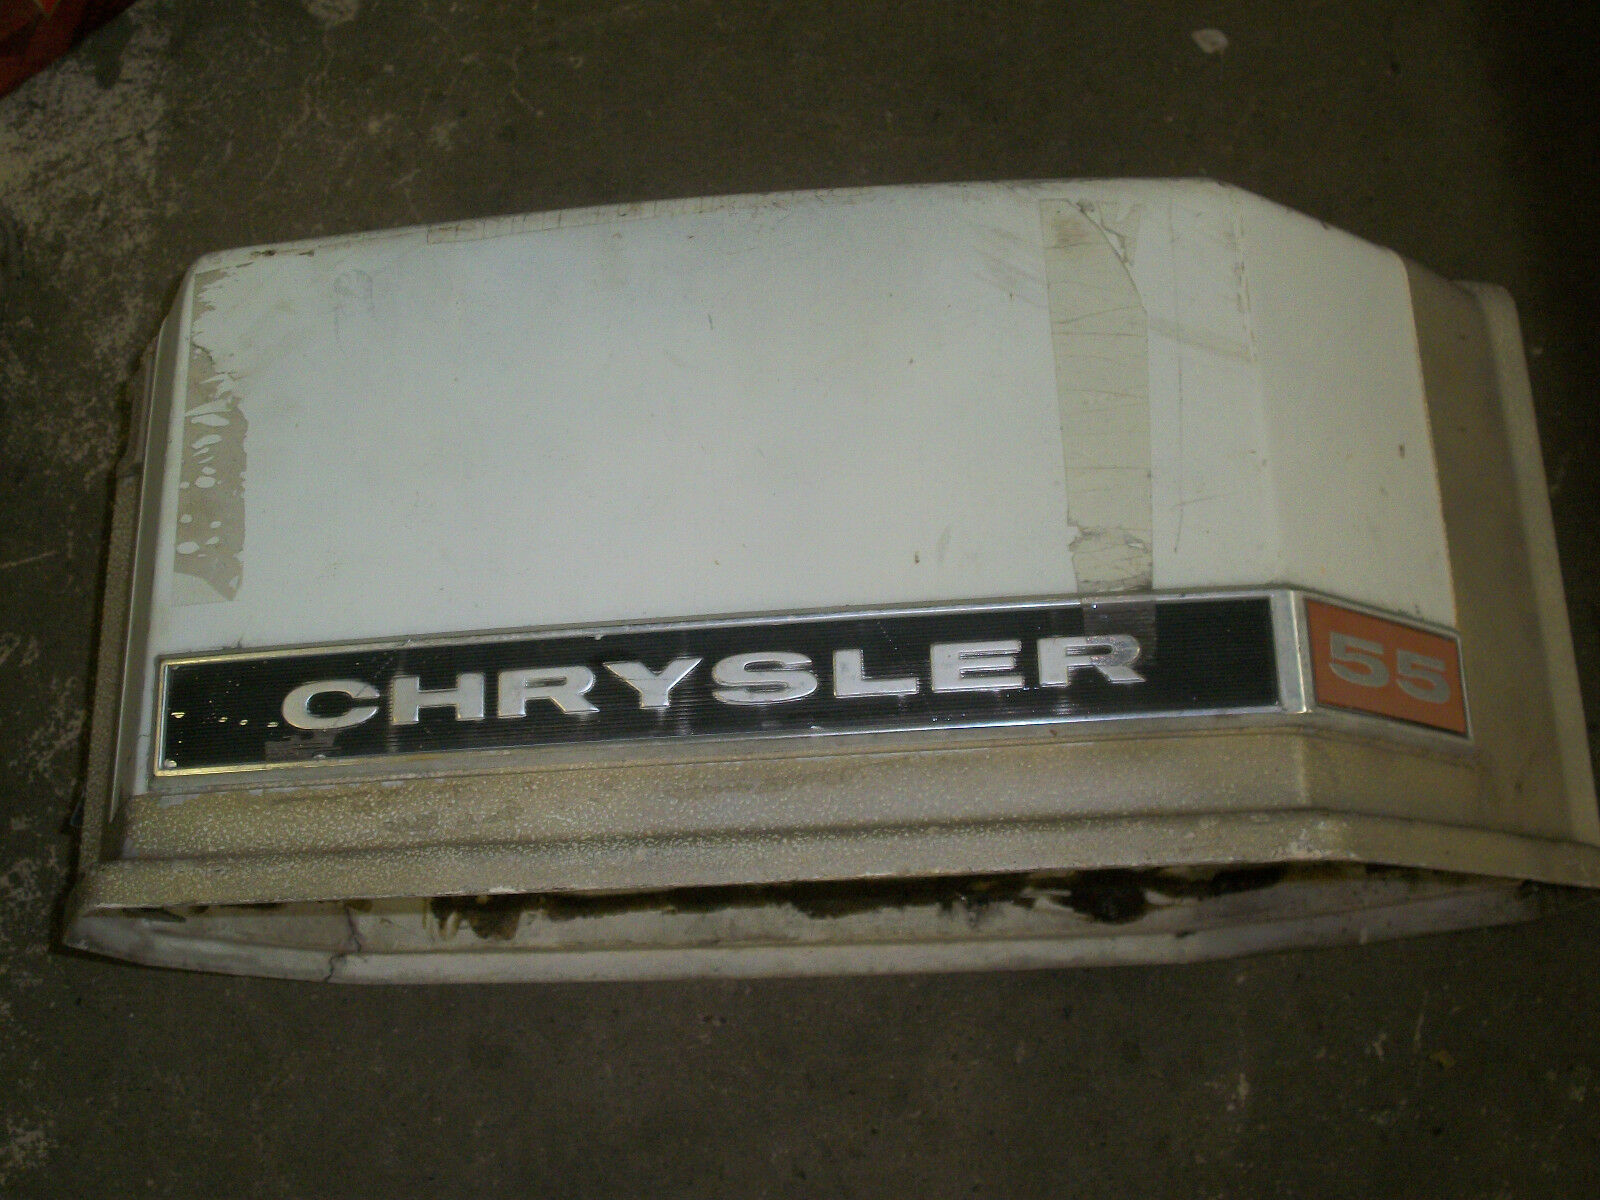 Chrysler Boat Motors 55 Hp Outboard Diagram Used Engine Motor Cover Shroud Cowling Of Only Available